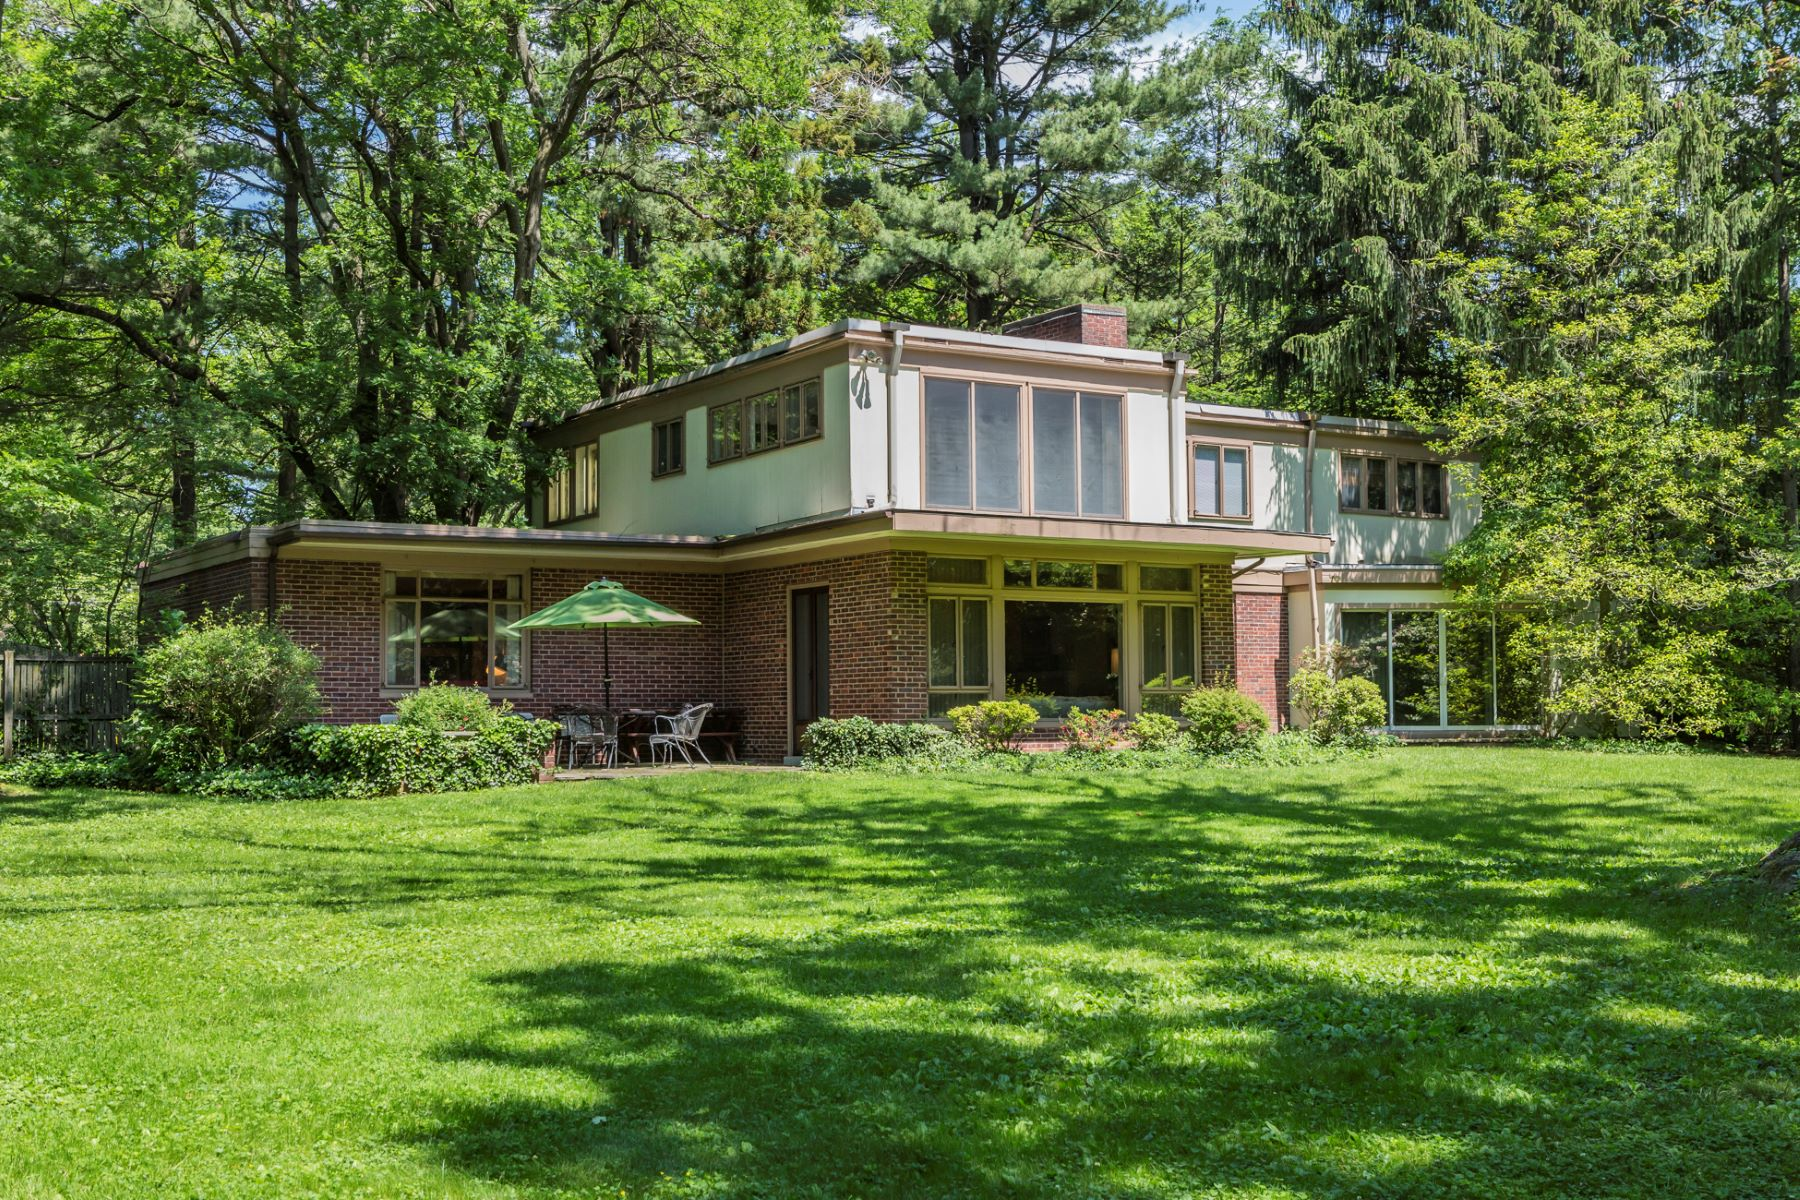 Property for Sale at A True Mid Century Modern and an Emerald Landscape 84 Allison Road, Princeton, New Jersey 08540 United States